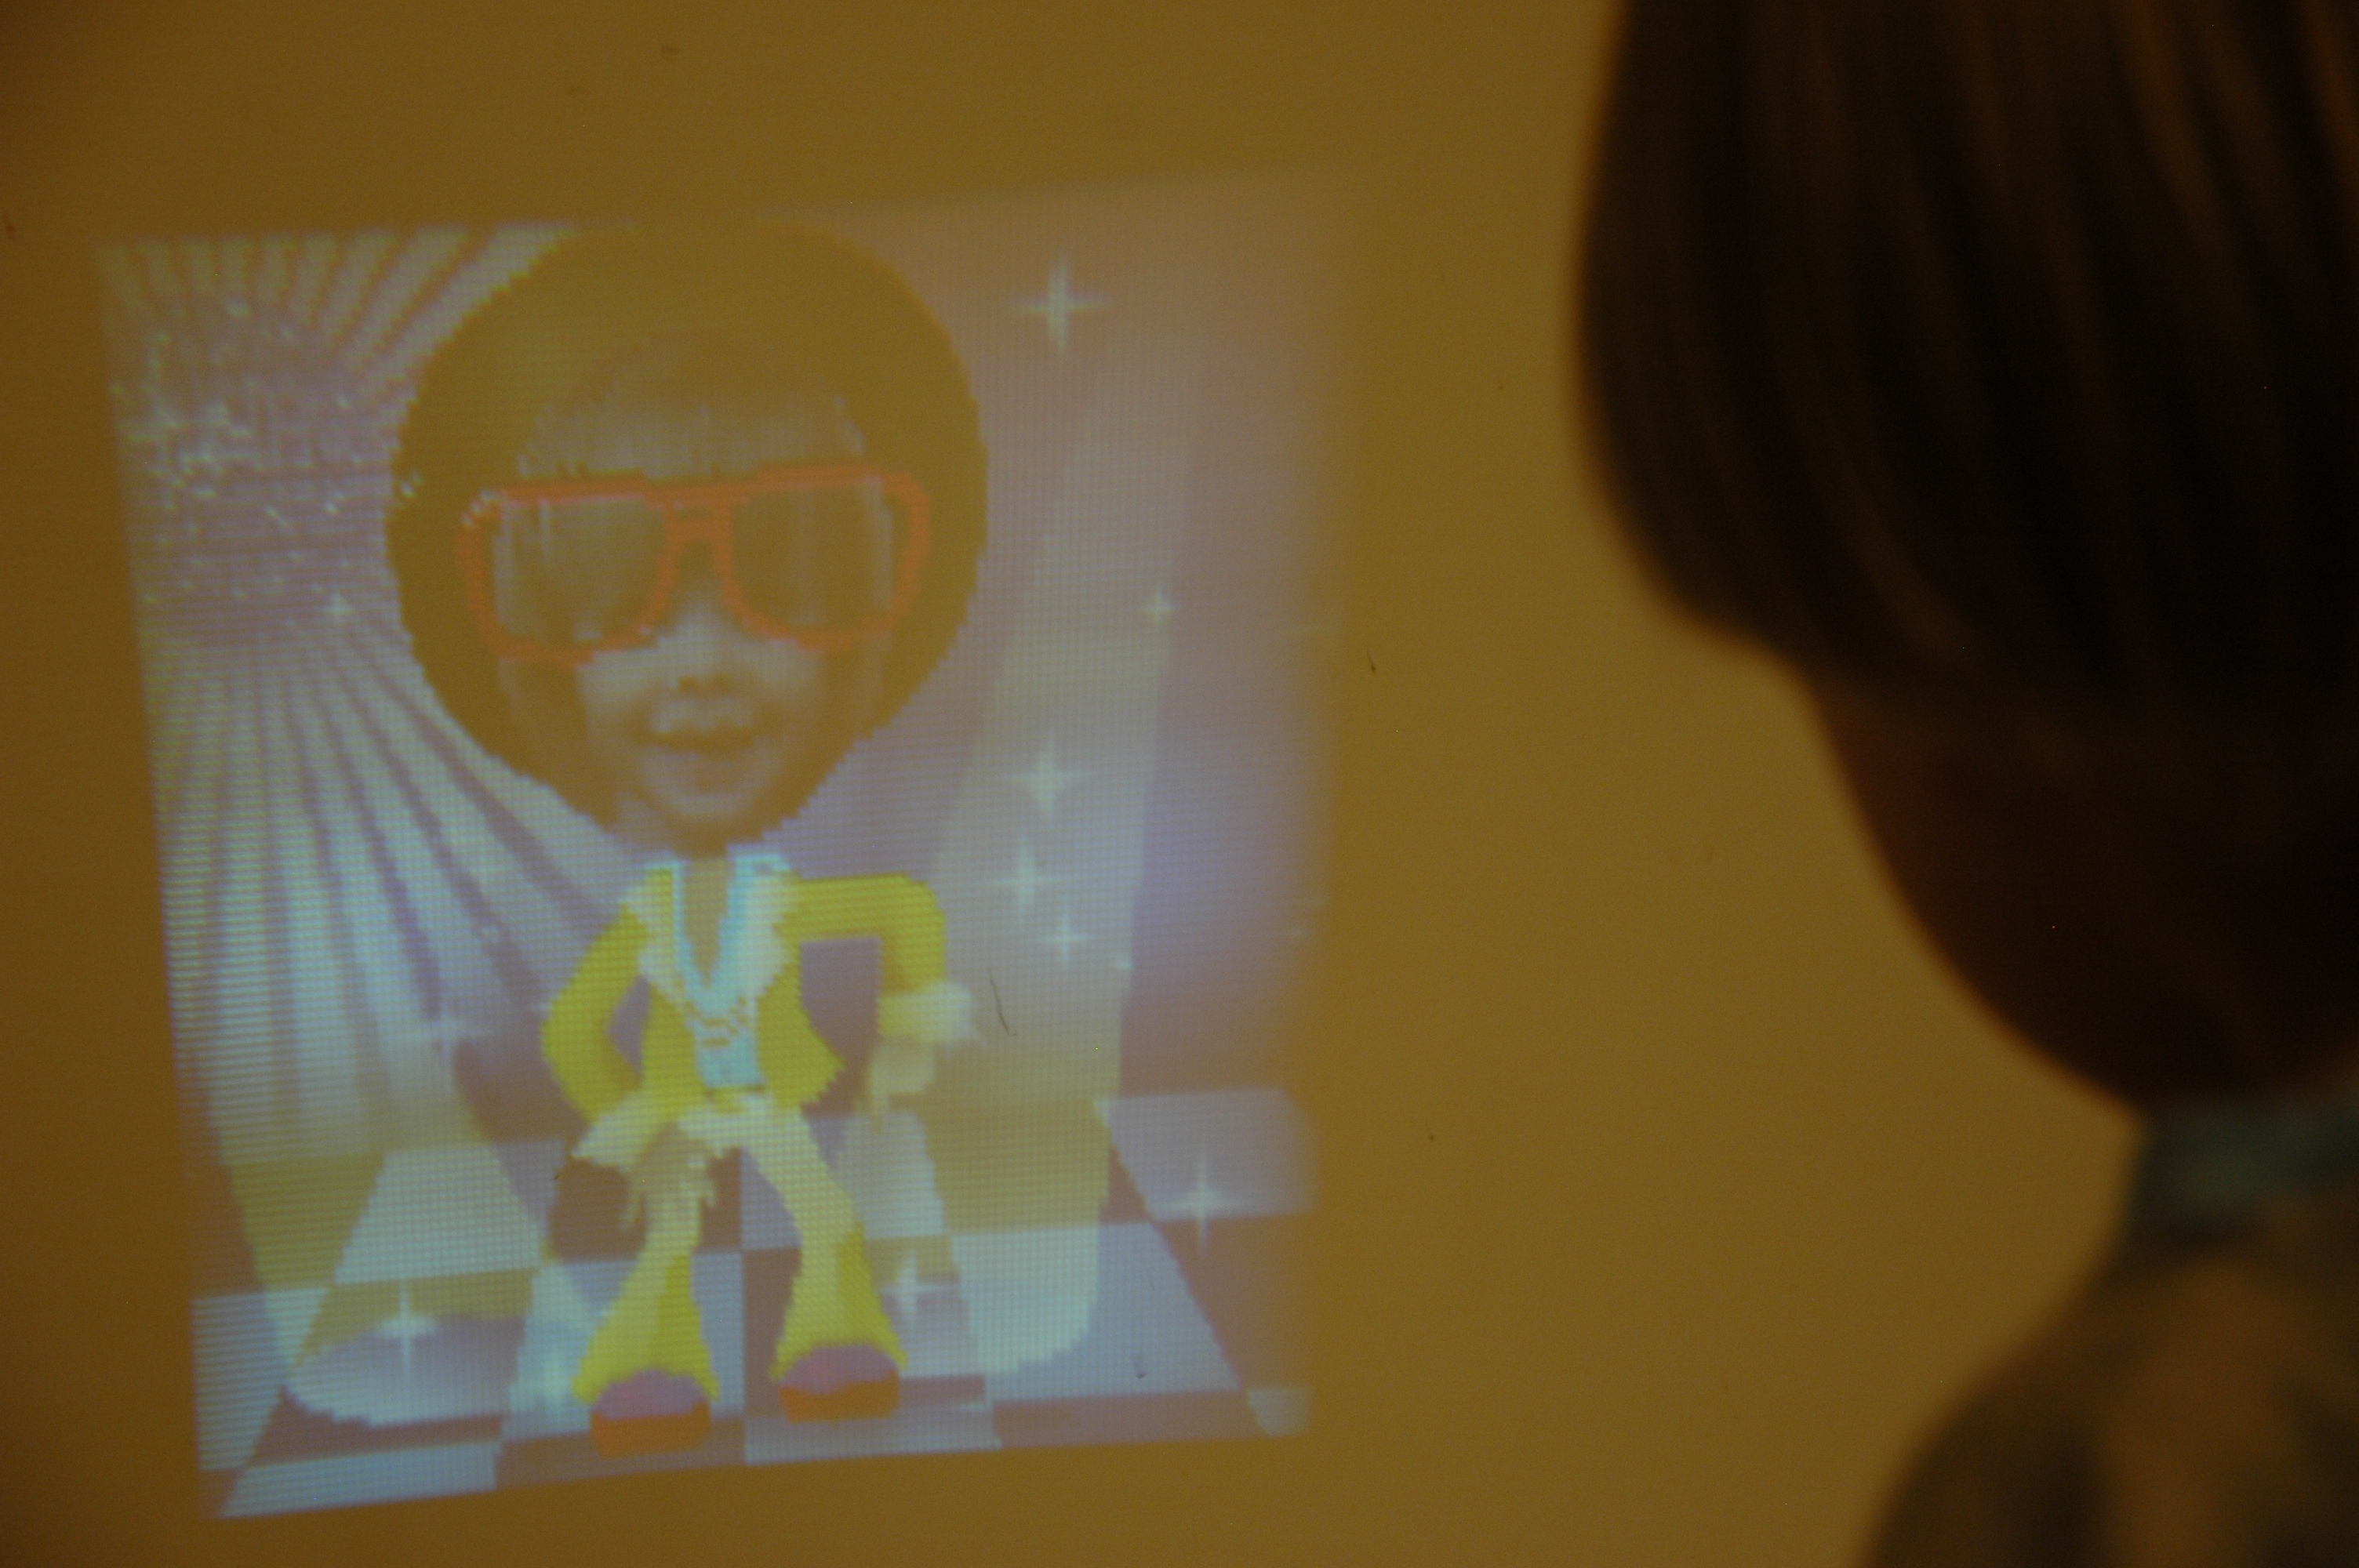 playskool showcam max and the projector